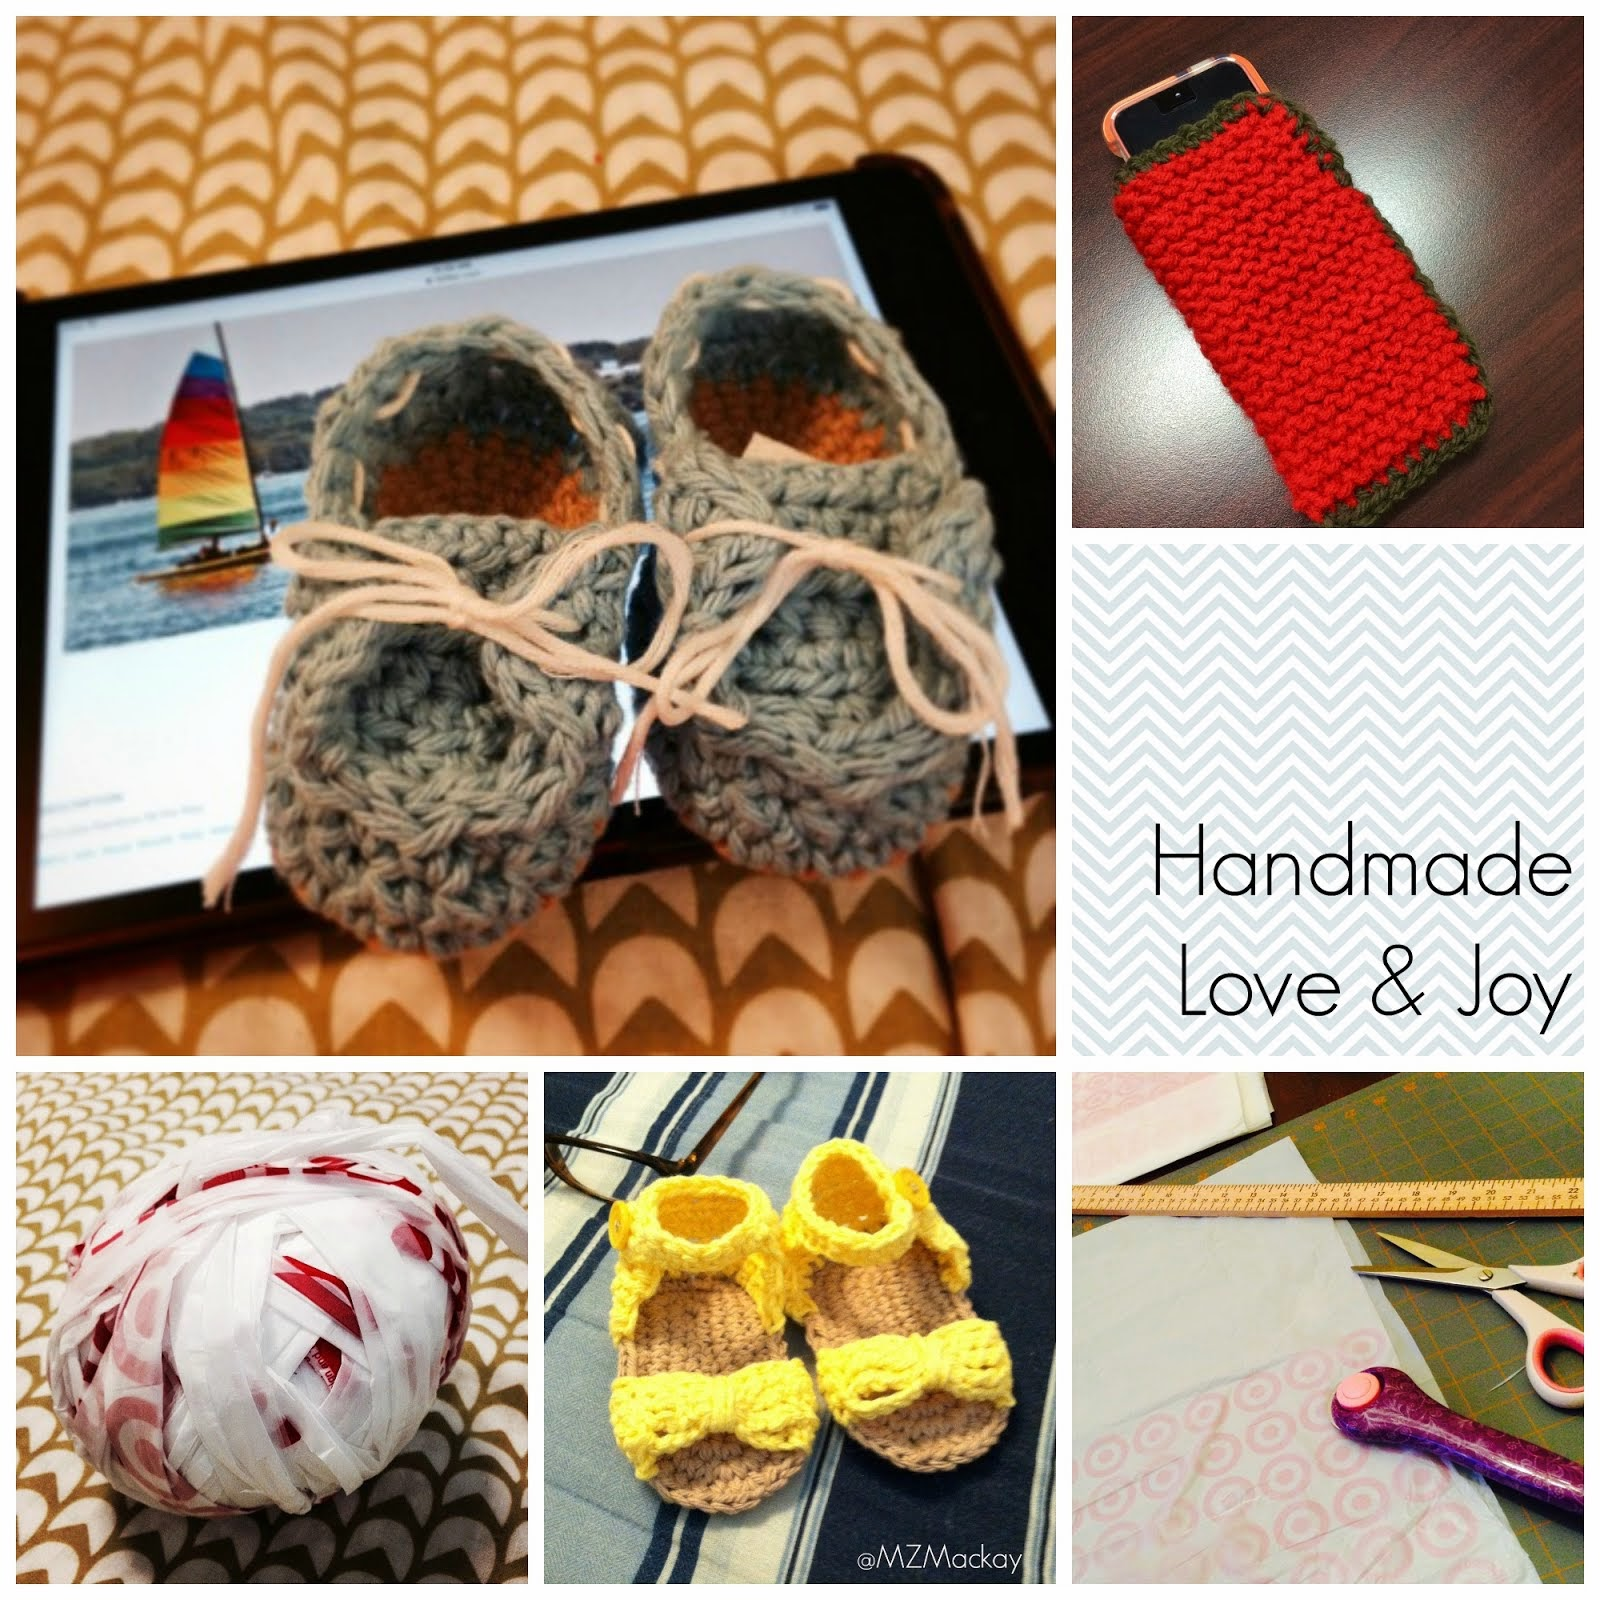 Handmade Love & Joy